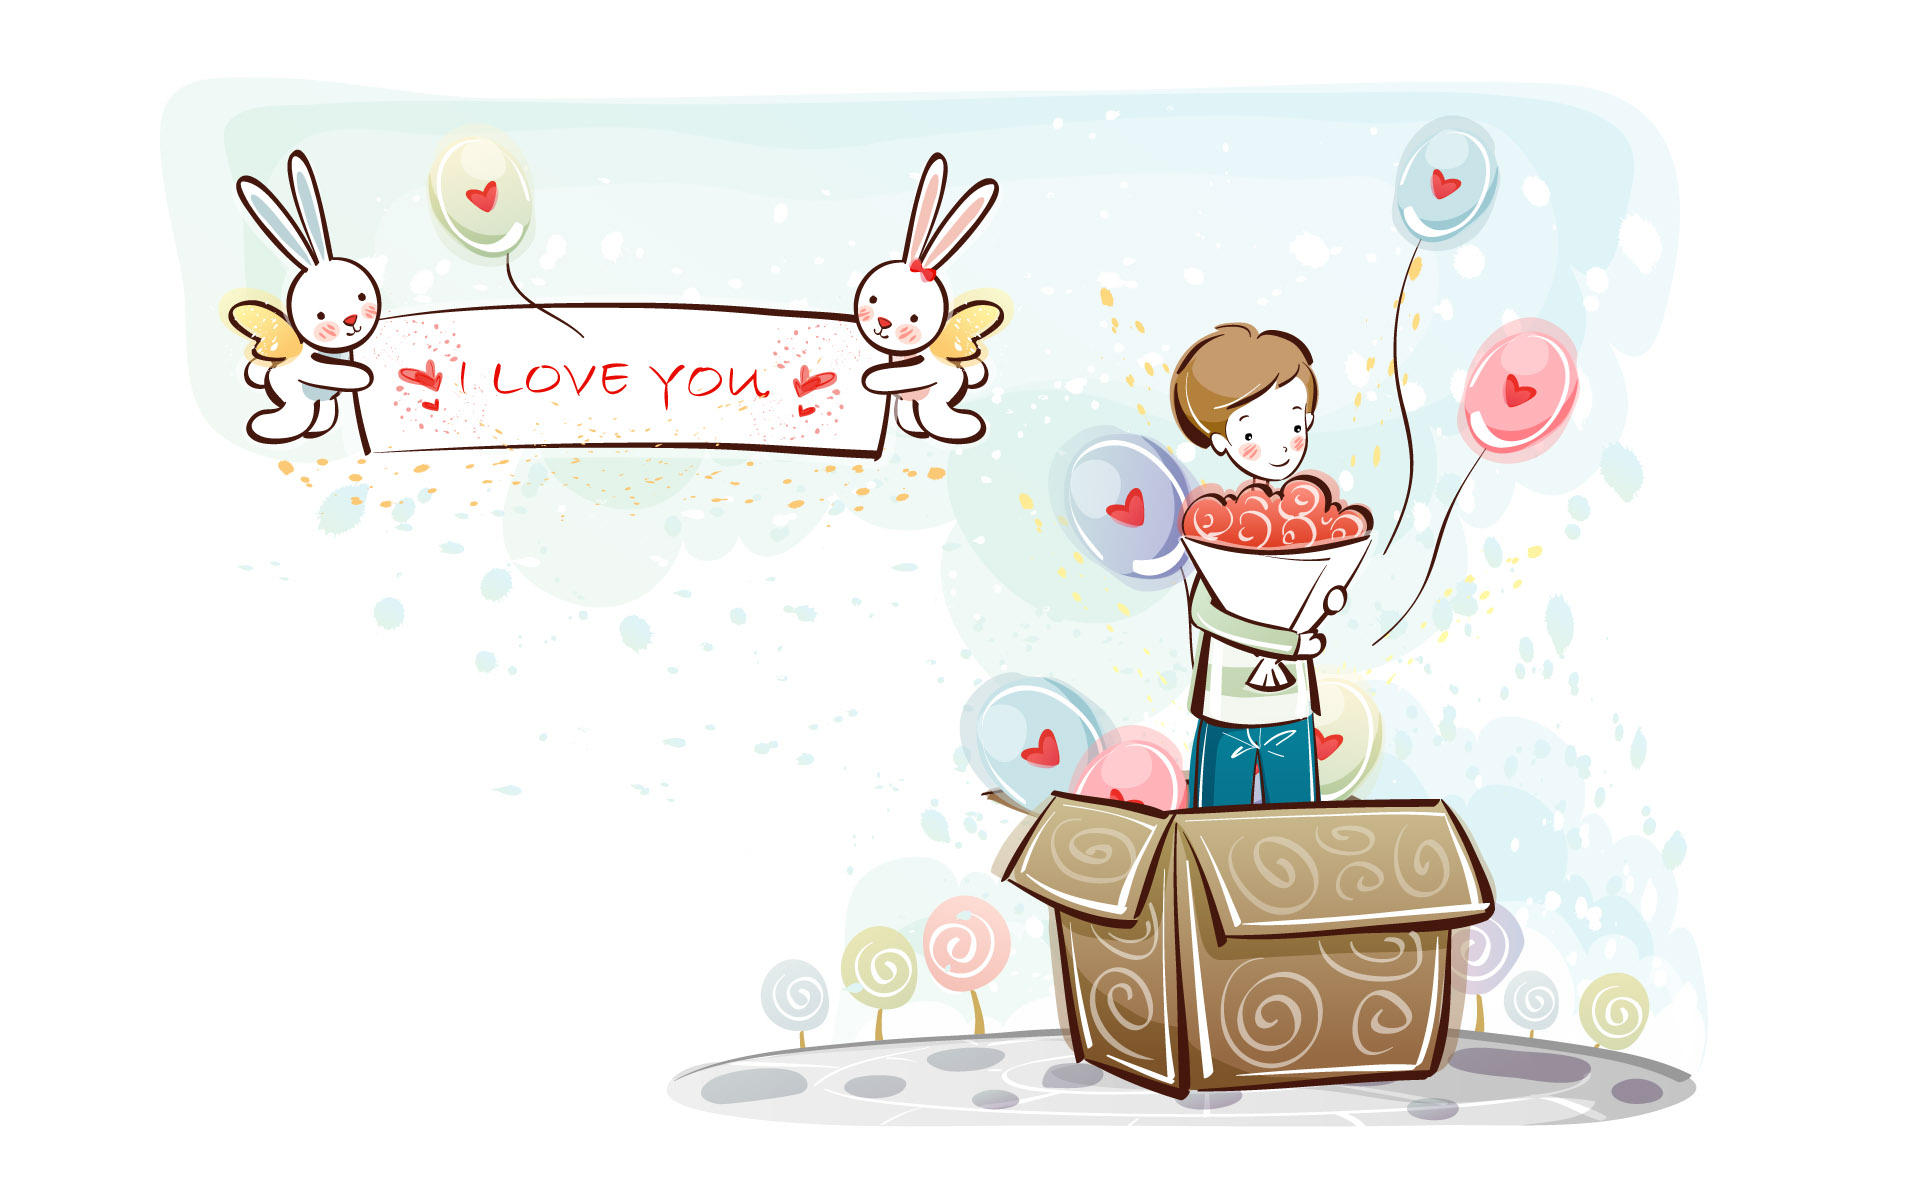 Cute Couples Wallpapers Full Hd Download Lovely Couple Cartoon Wallpaper Gallery